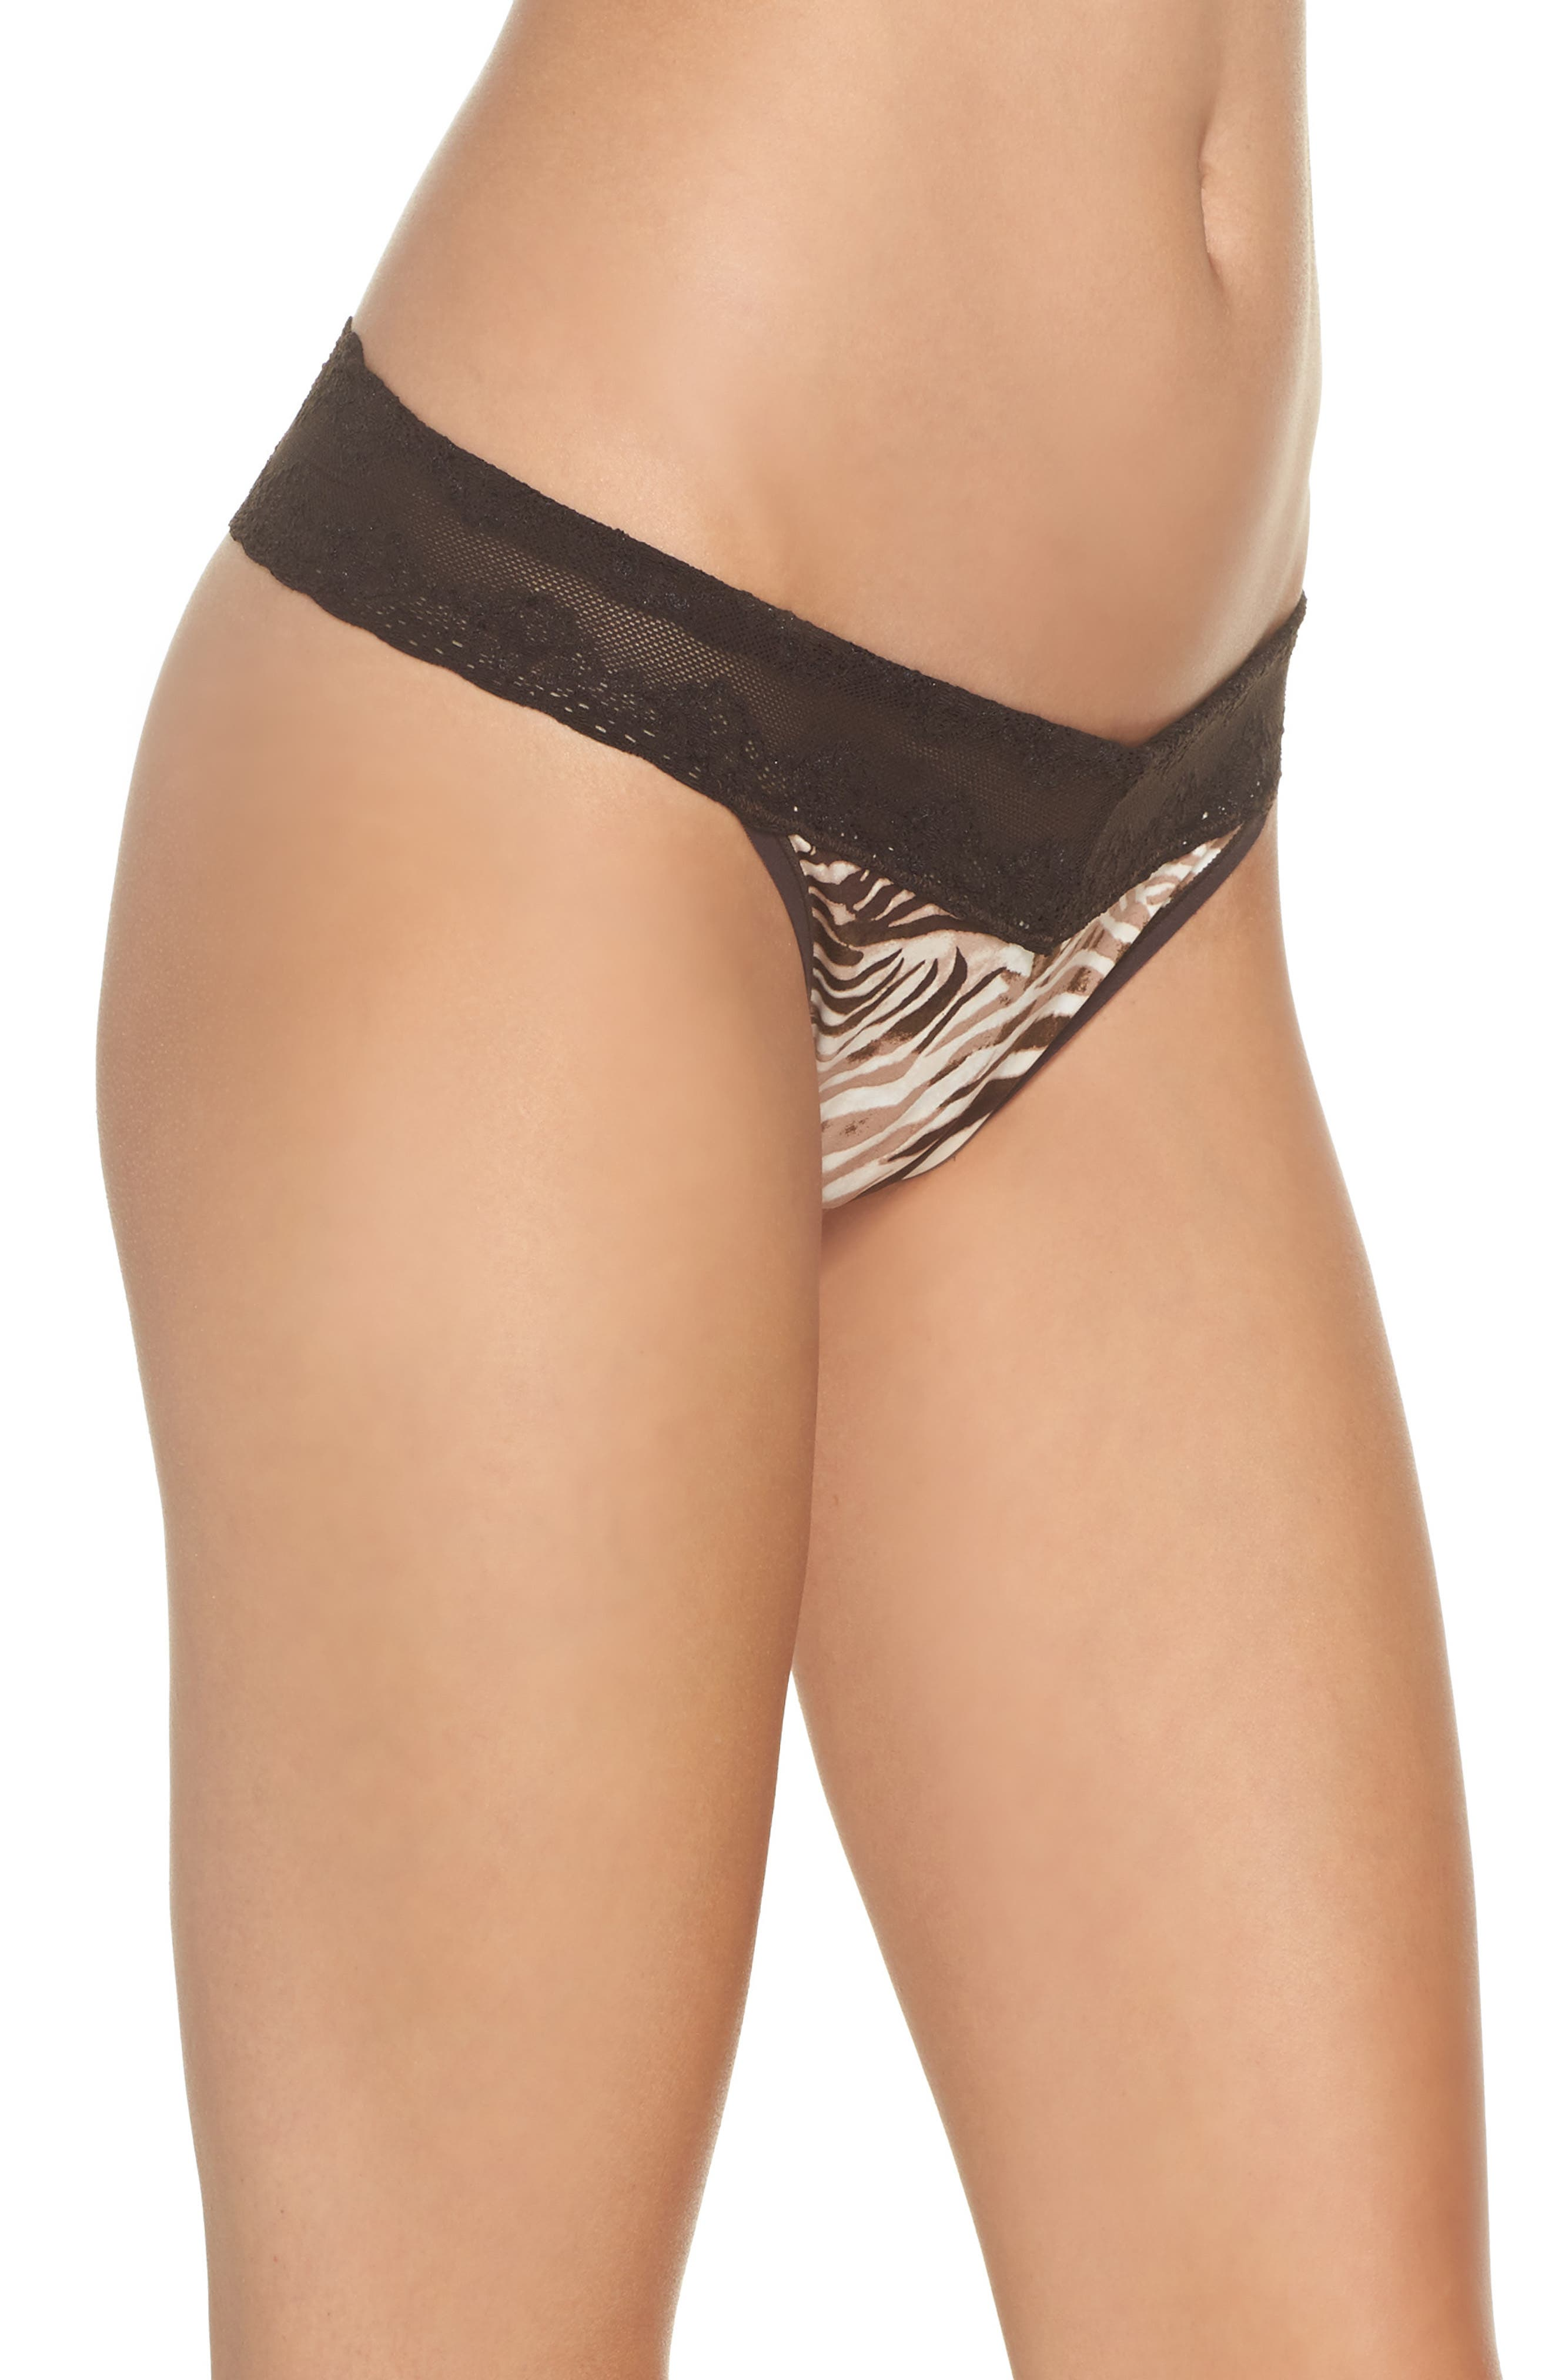 Bliss Perfection Thong,                             Alternate thumbnail 203, color,